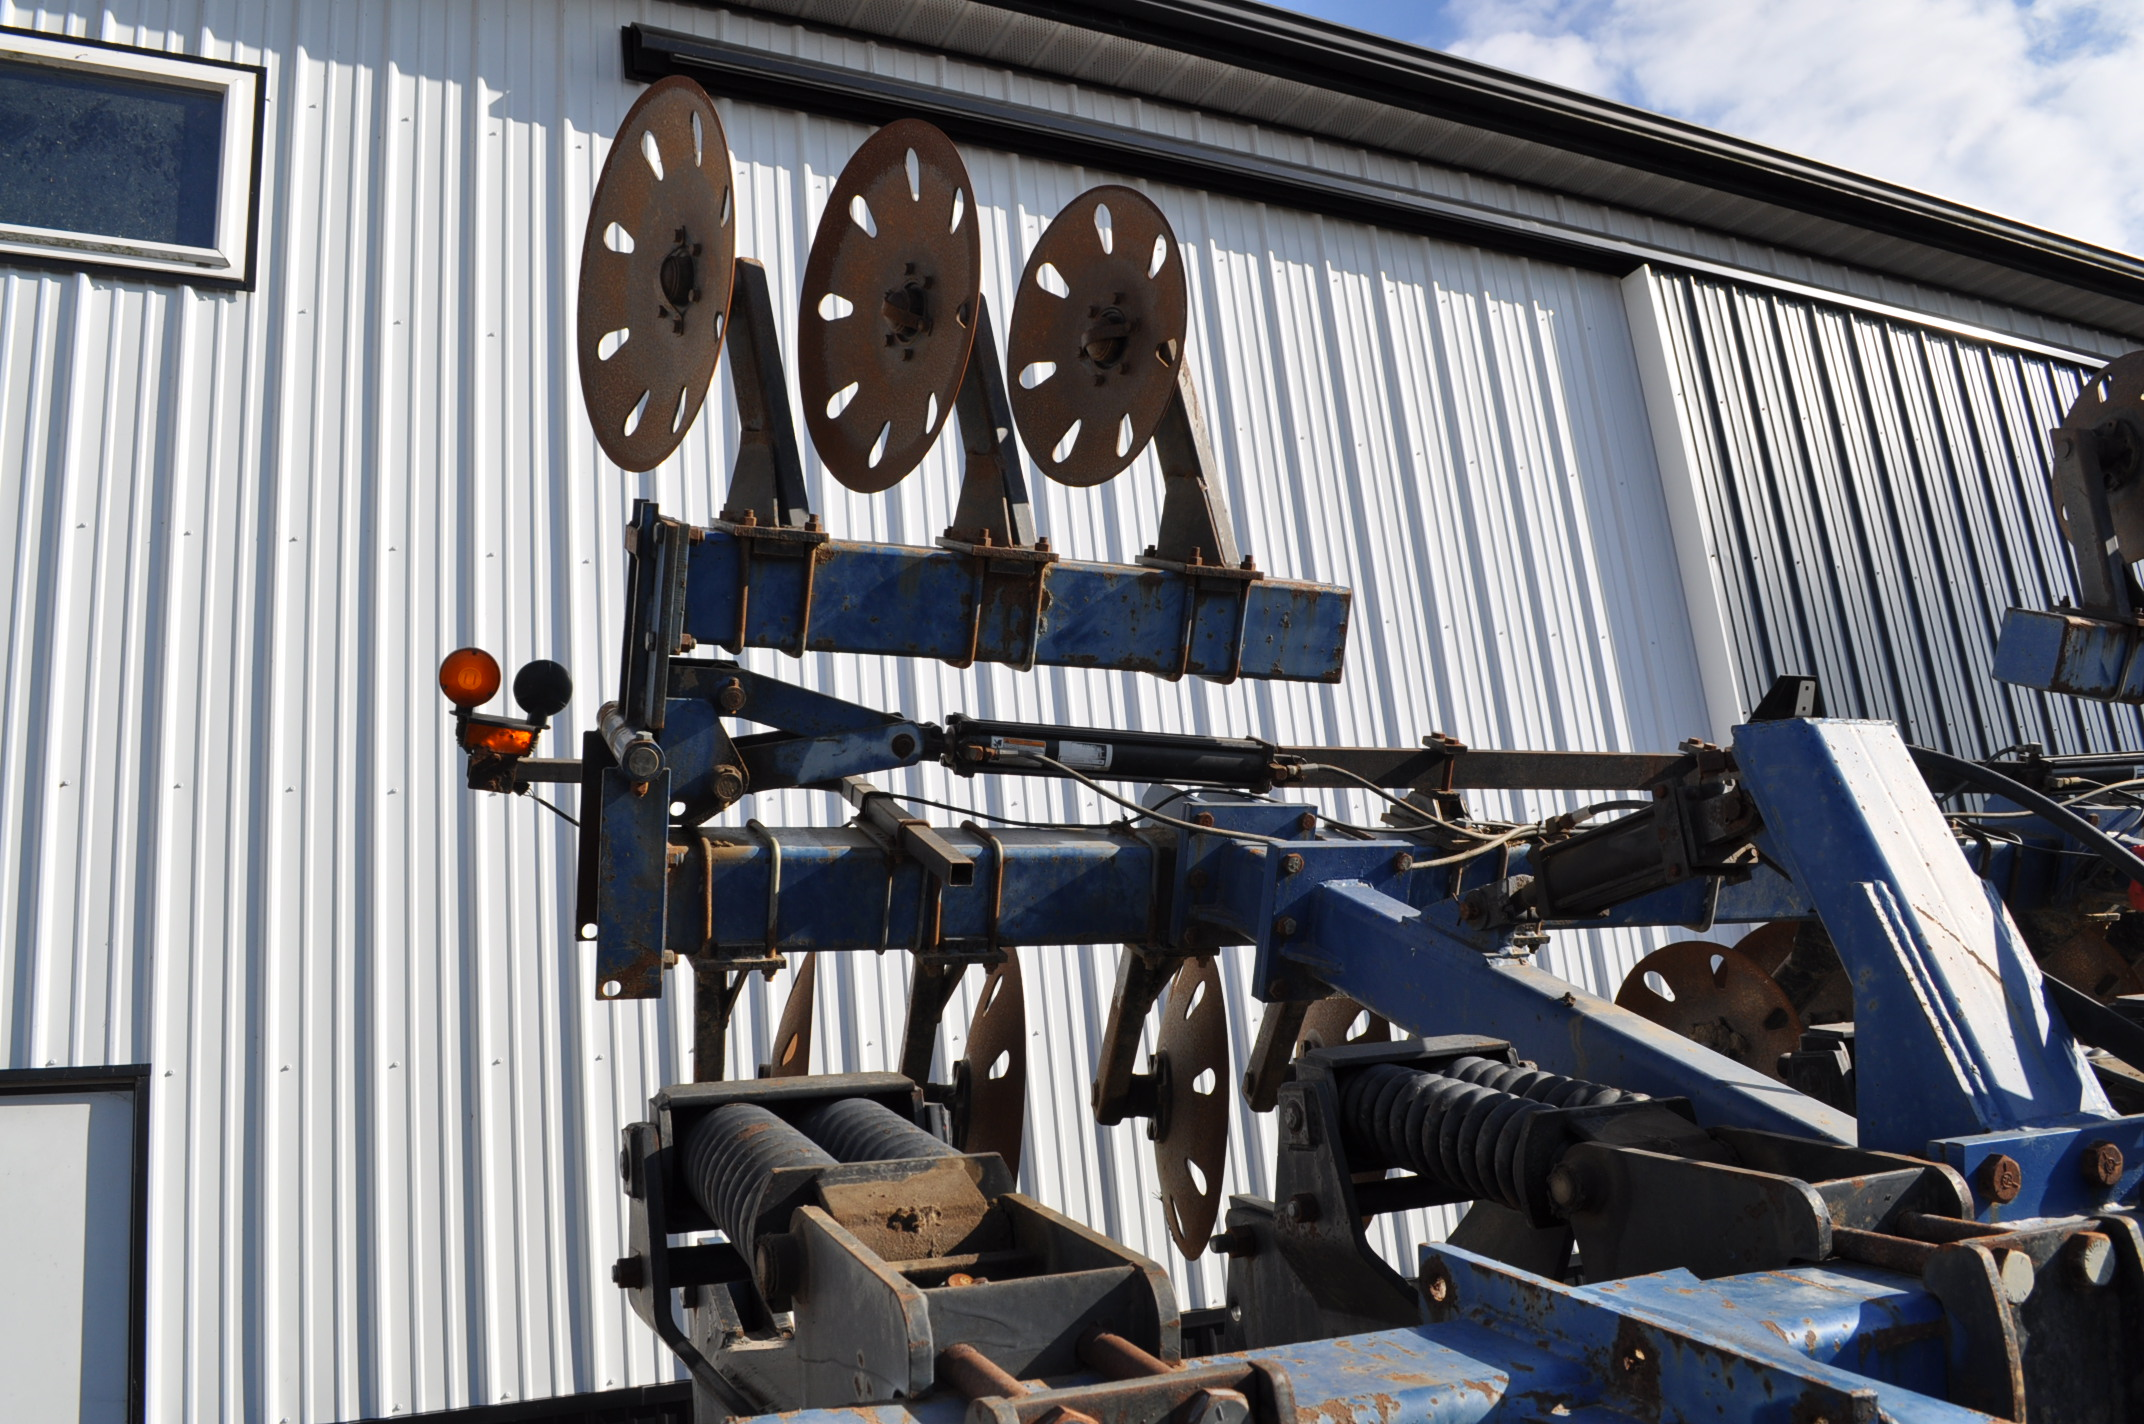 Blu-Jet Tillage Pro 7 shank inline ripper, front and rear hyd adjustable discs, sells with extra - Image 17 of 18